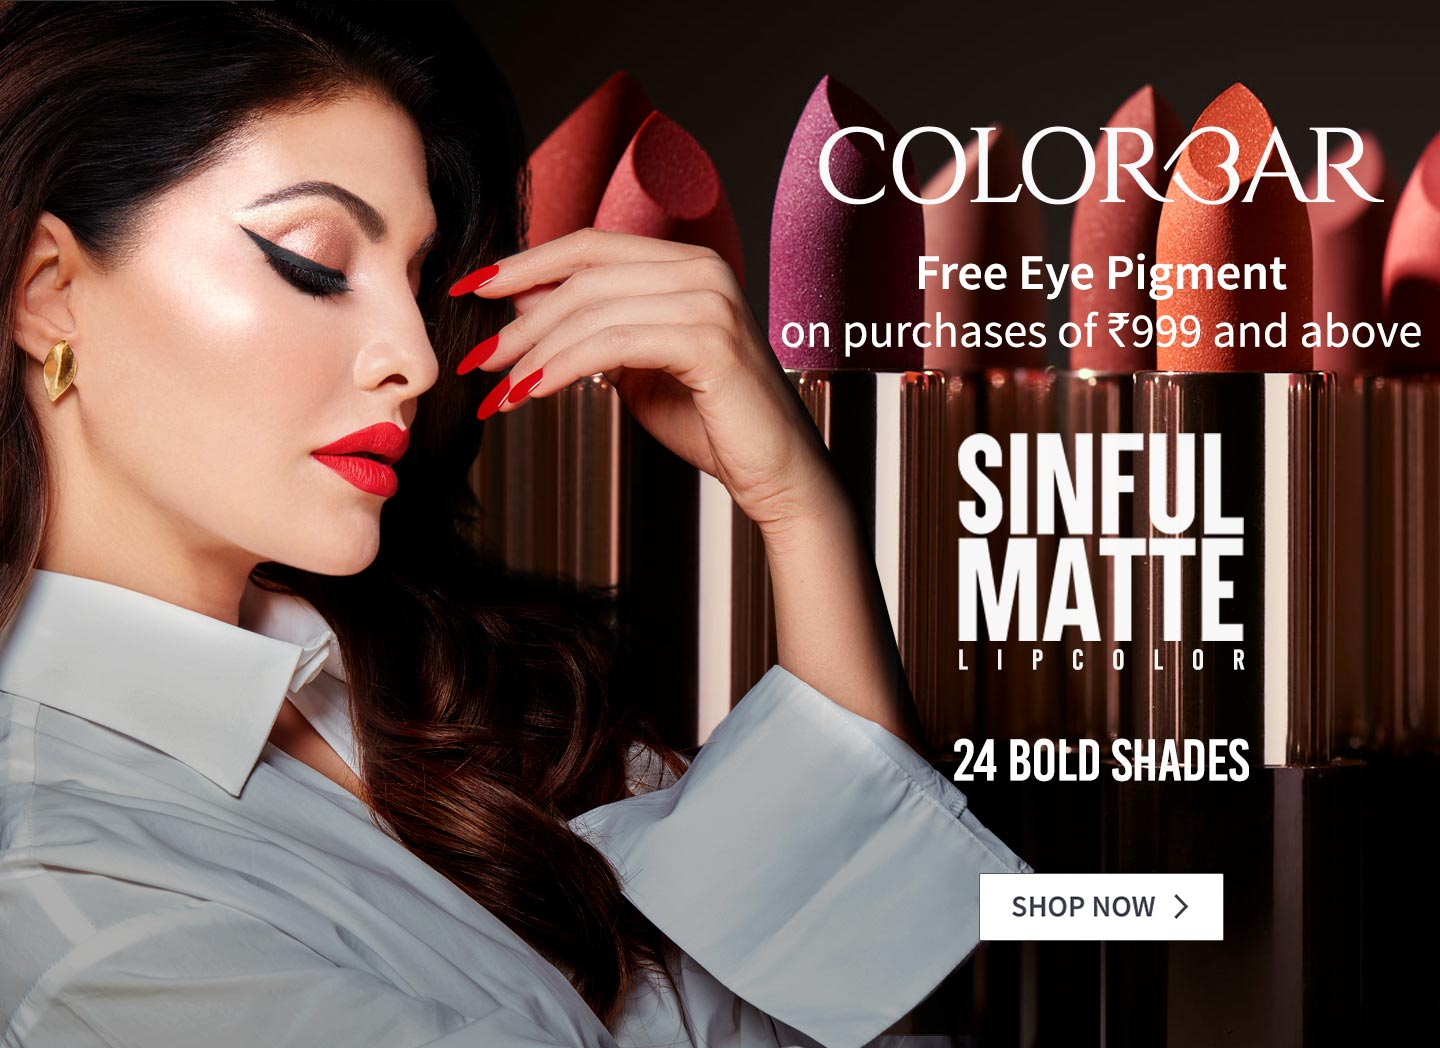 Buy Cosmetics Products & Beauty Products Online in India at Best Price | Nykaa